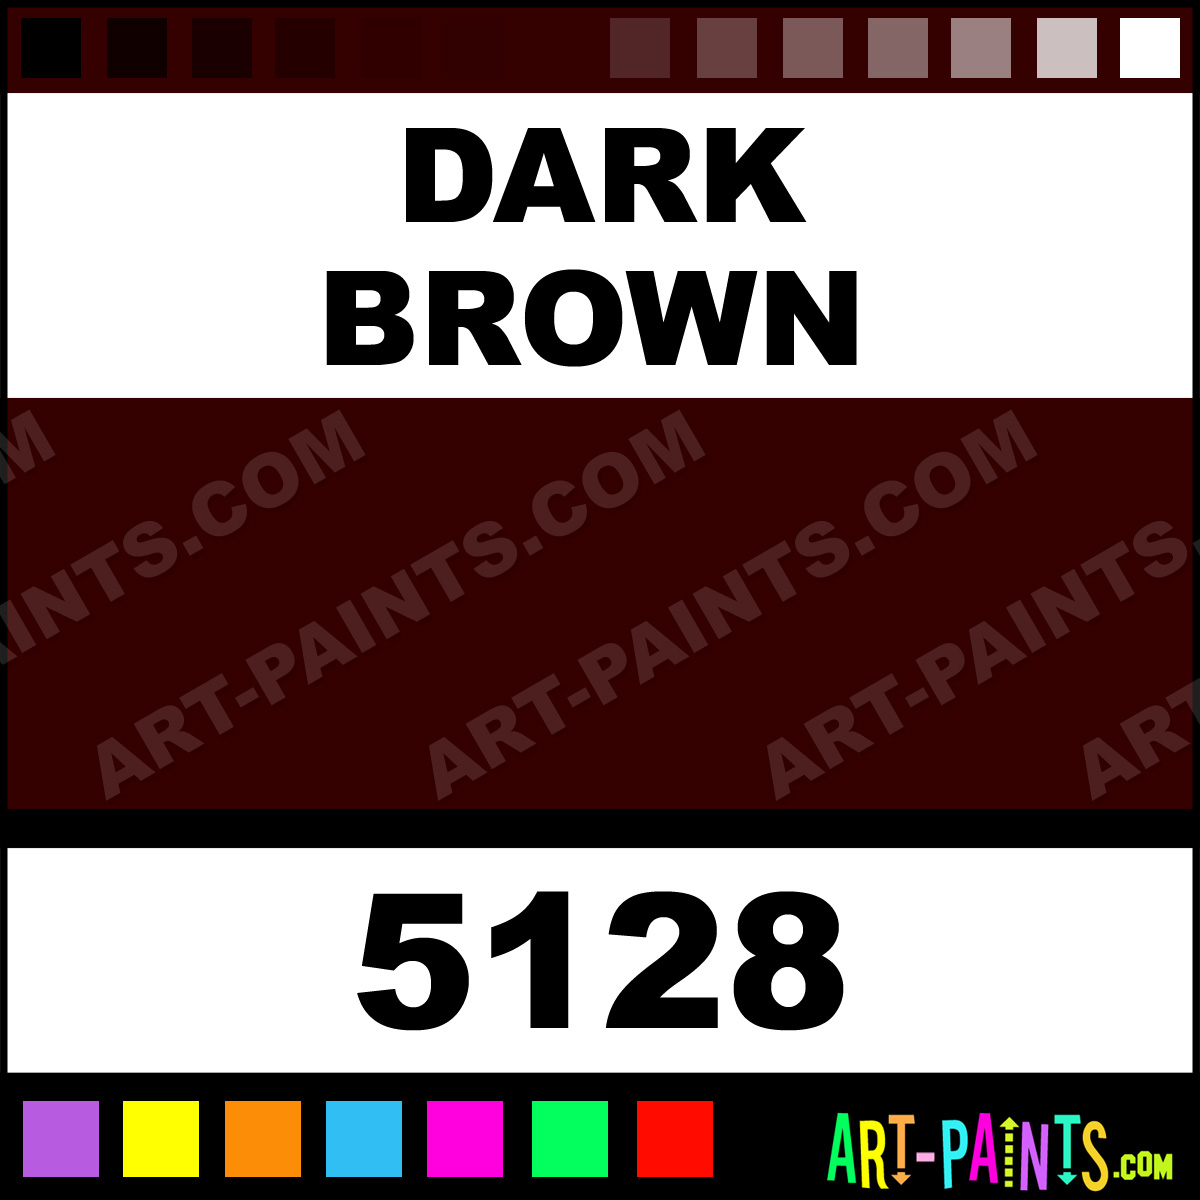 Dark Brown Professional Airbrush Spray Paints 5128